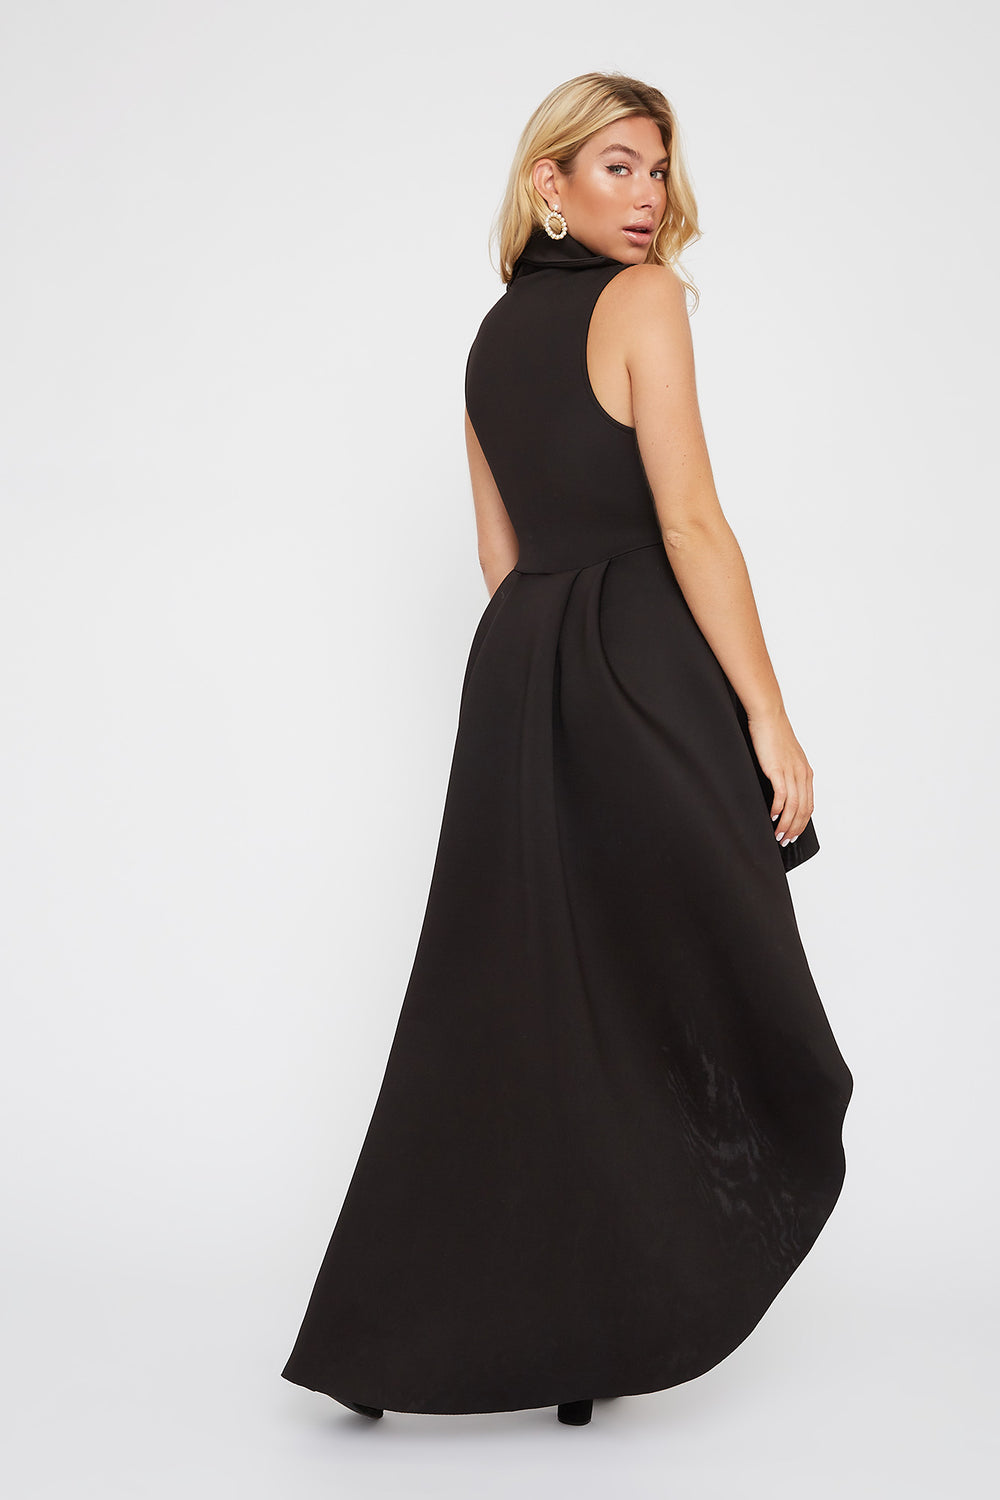 Plunging Collar Sleeveless High-Low Dress Black